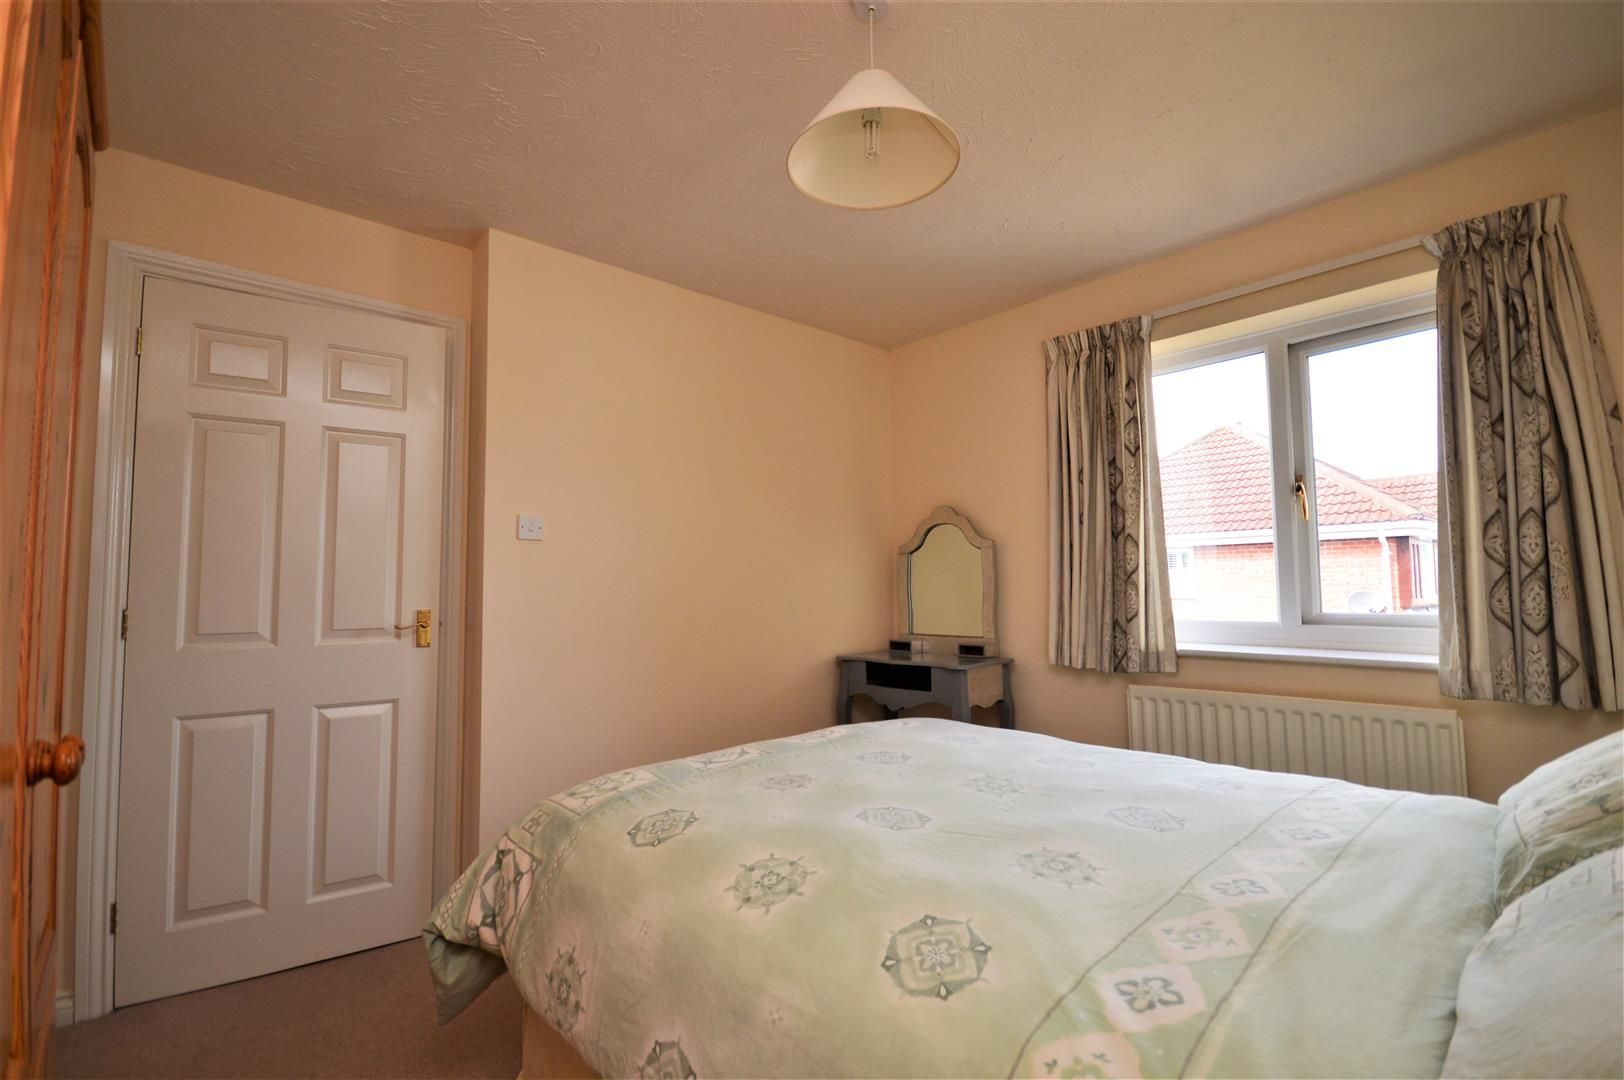 4 bed detached for sale in Belmont 10